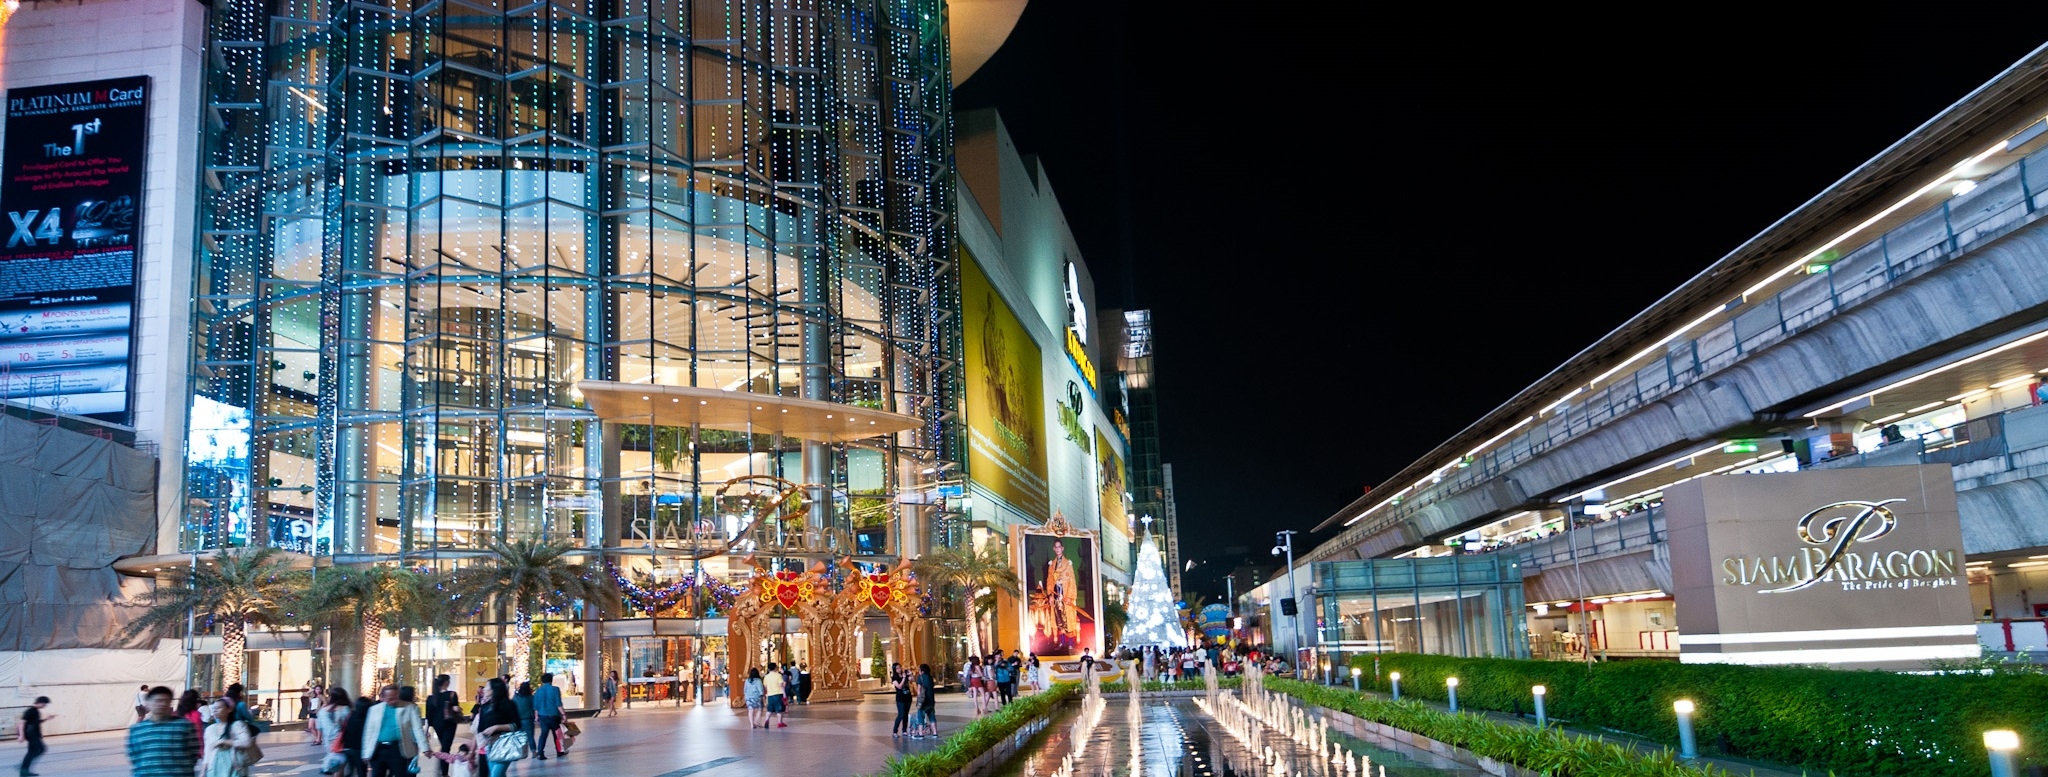 Why is a shopping mall in Thailand Instagram's most photographed place in 2013?